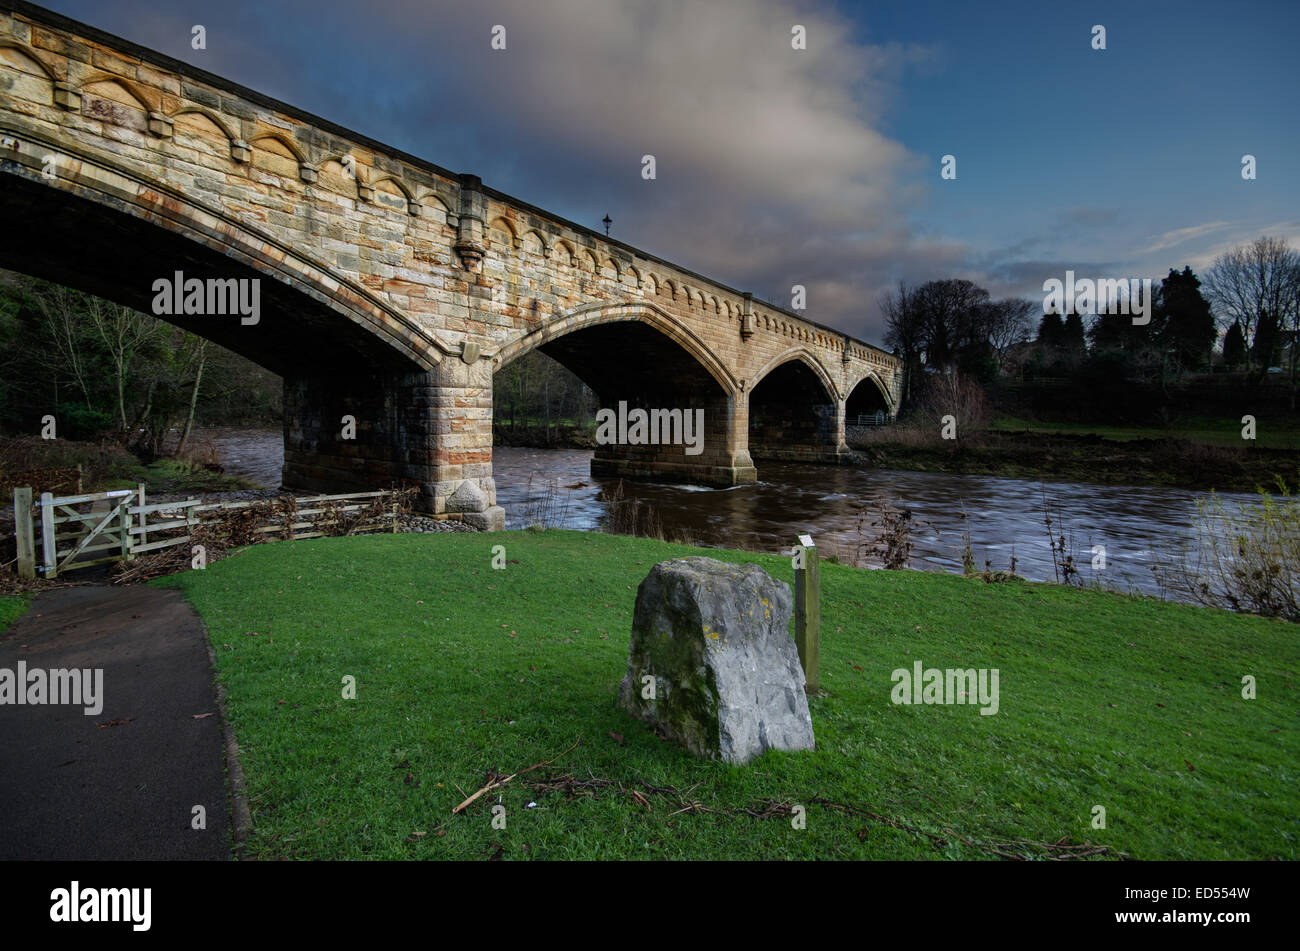 The Mercury Bridge, Richmond spanning the River Swale some 400 yards from the Old Railway Station, North Yorkshire. Stock Photo